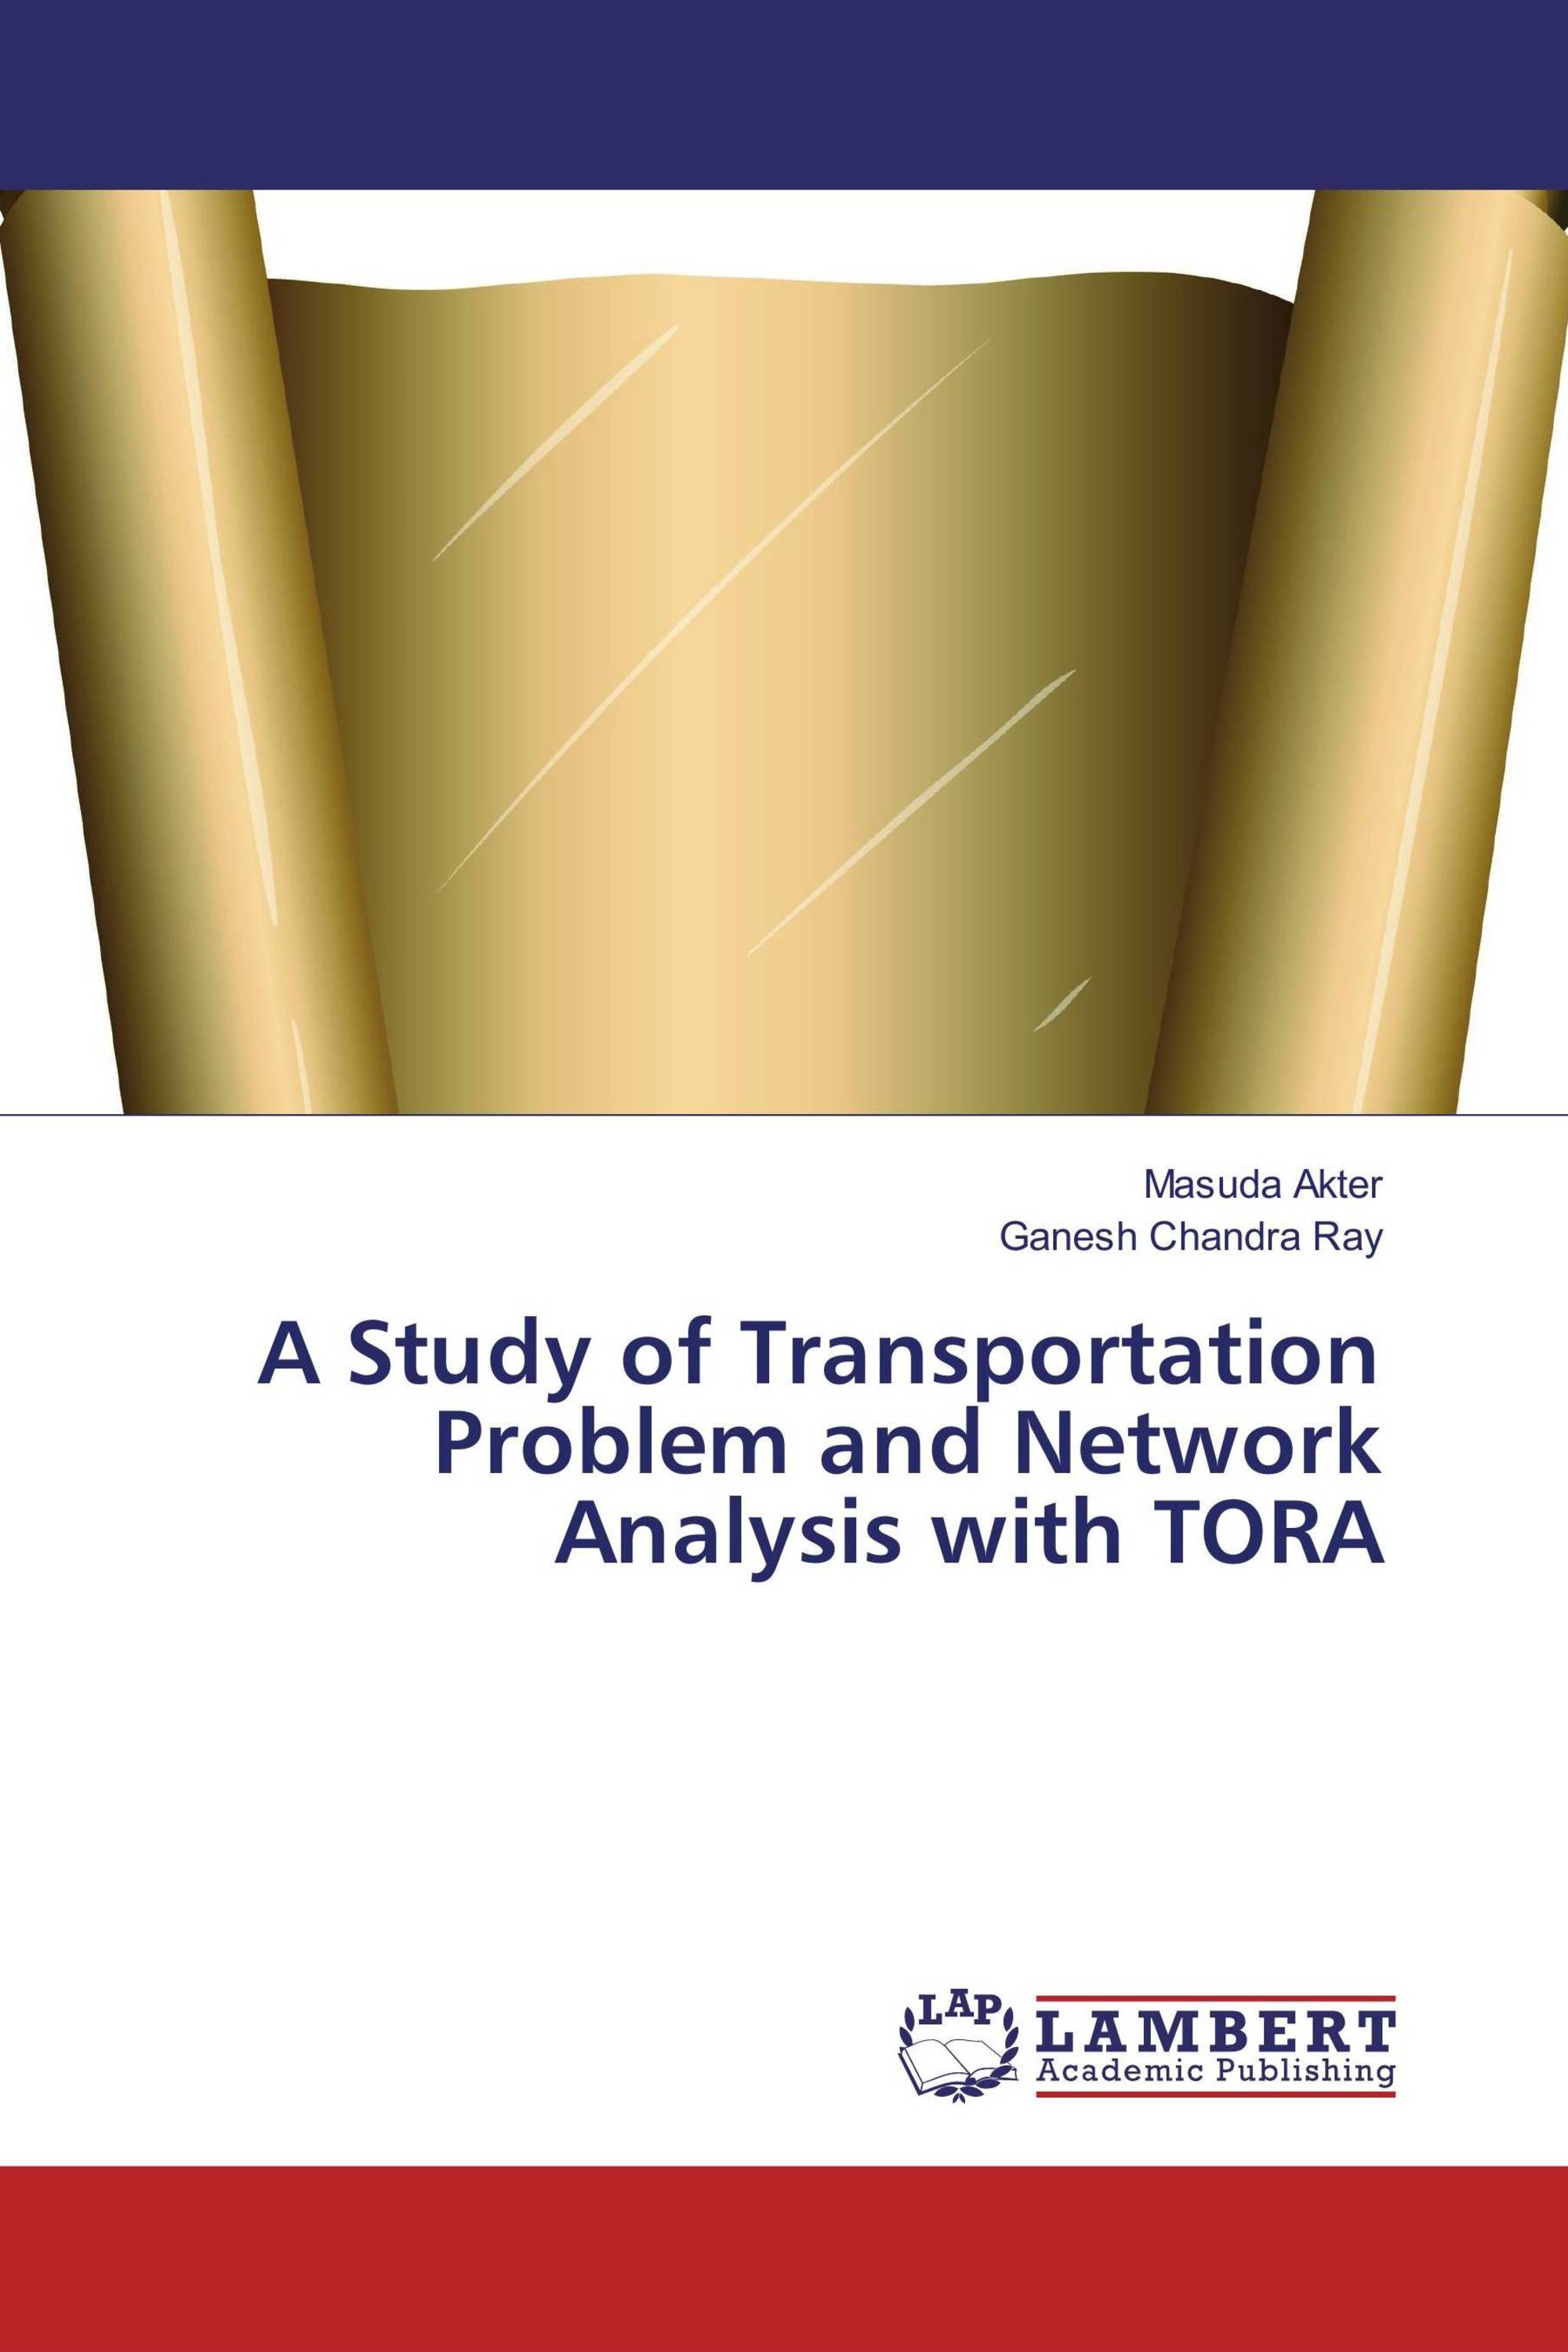 what is tora software